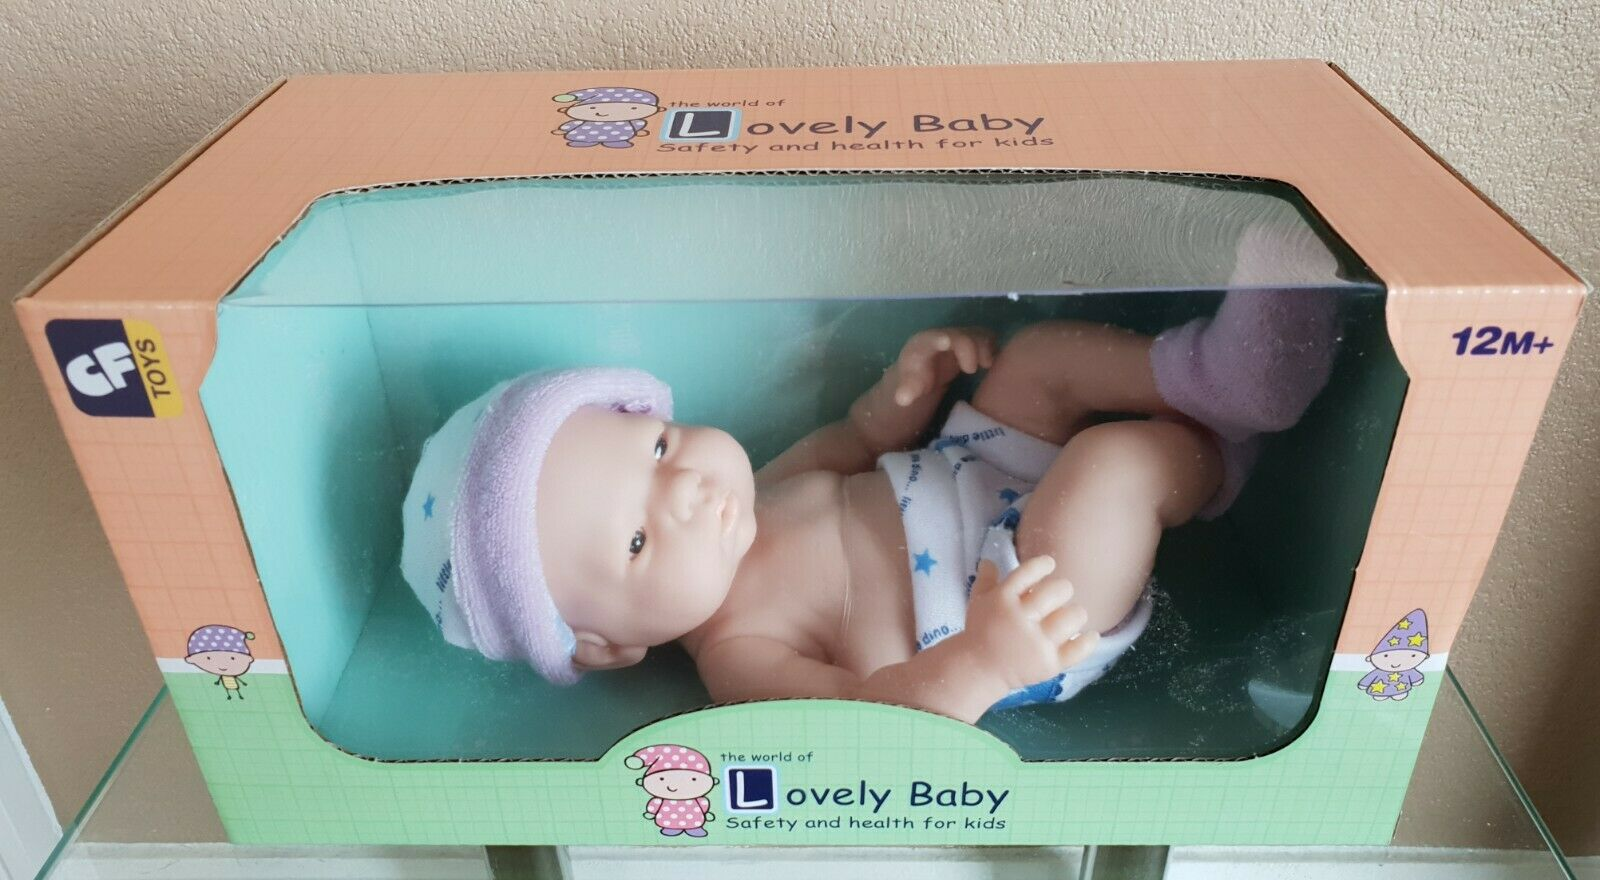 25cm Lovely Lifelike Soft Silicone Reborn Baby Doll with Clothes BNIB